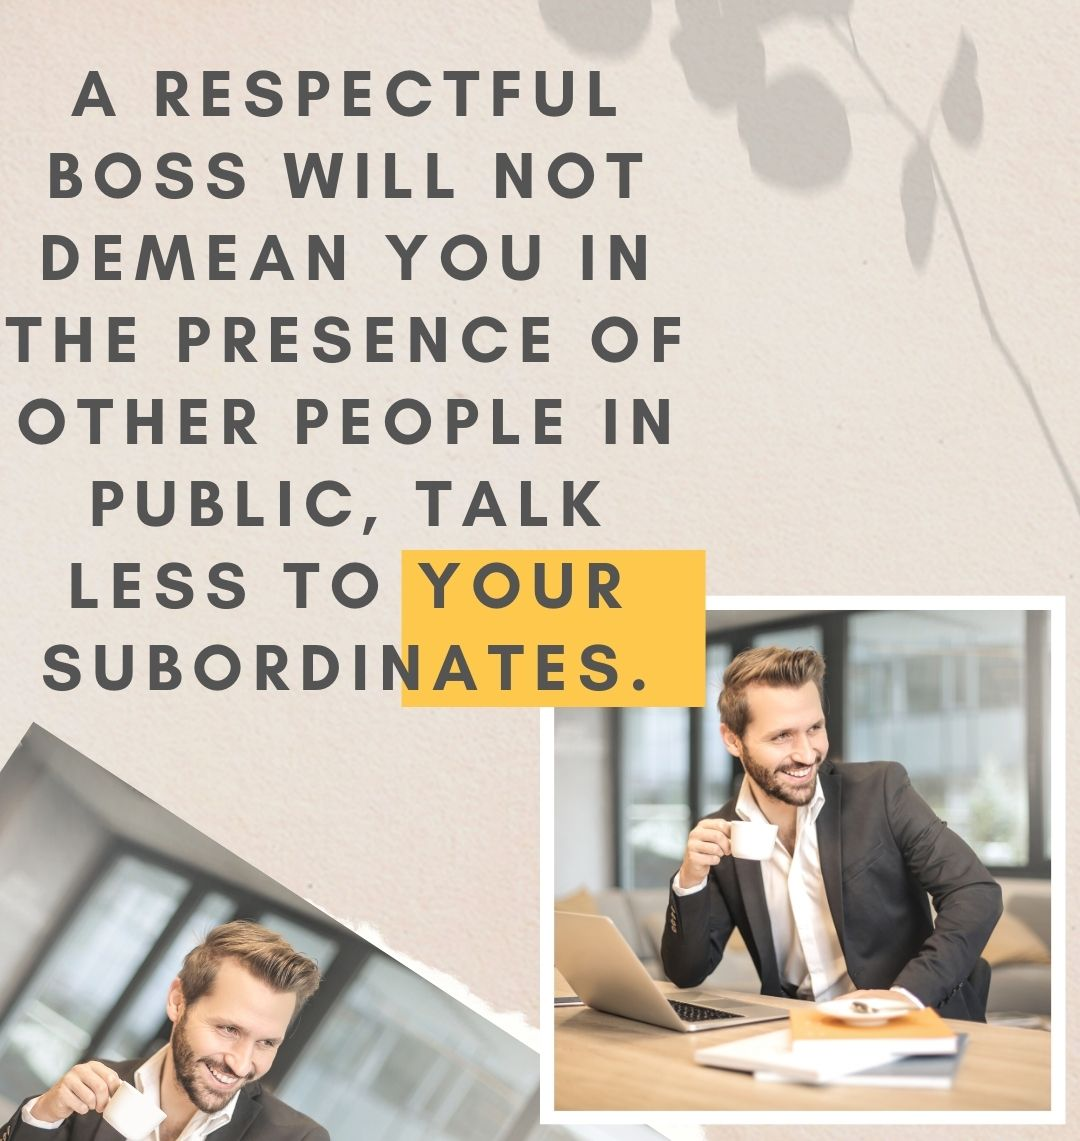 A respectful boss will not demean you in the presence of other people in public, talk less to your subordinates.